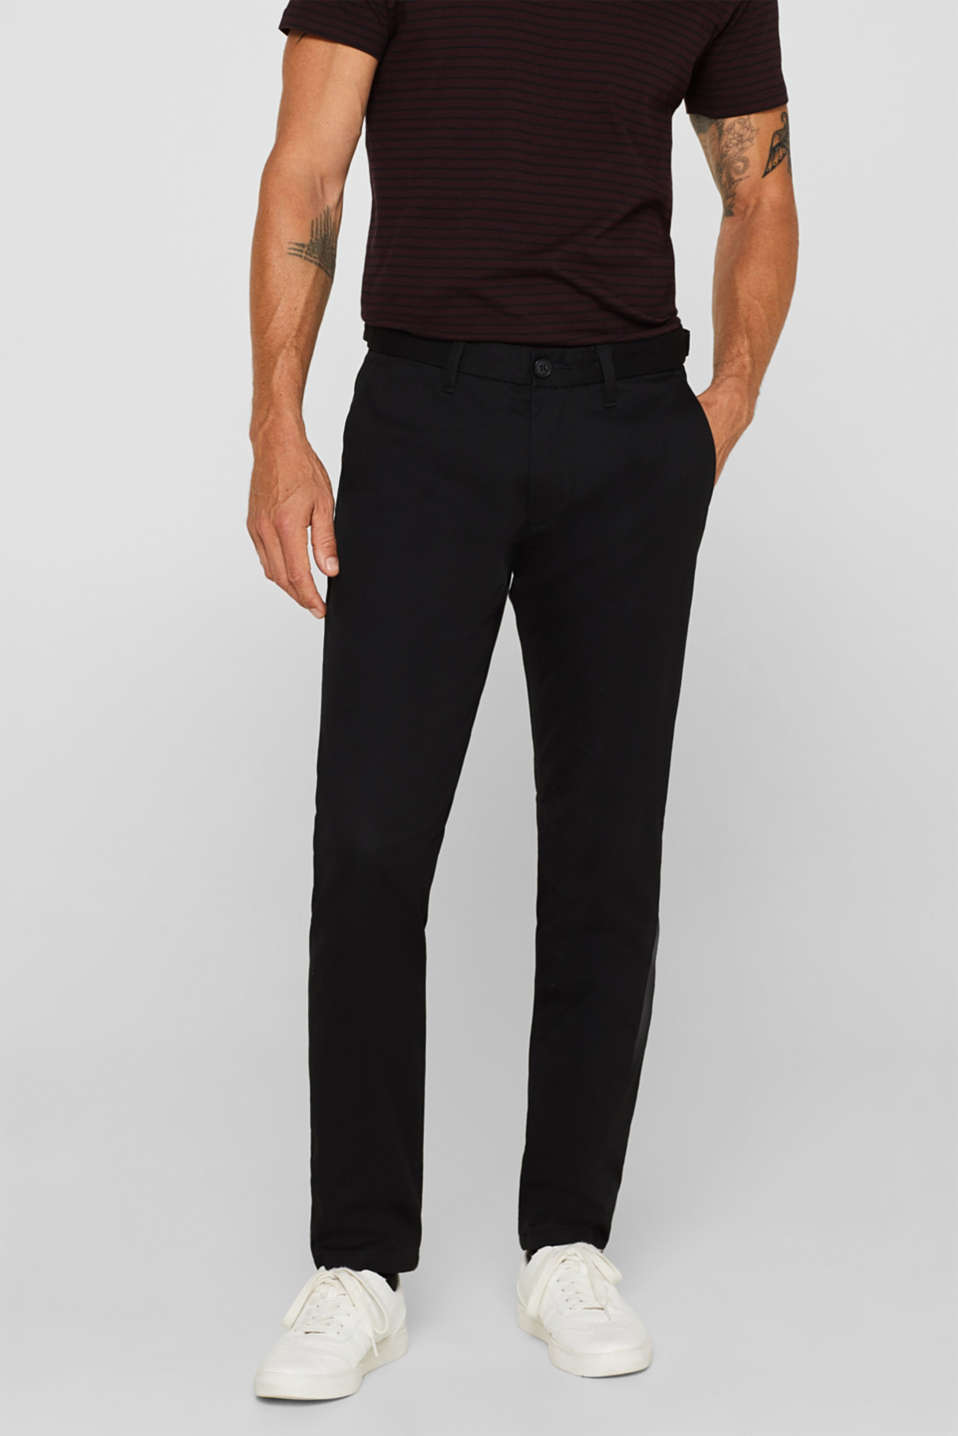 Esprit - Pants aus Baumwoll-Stretch